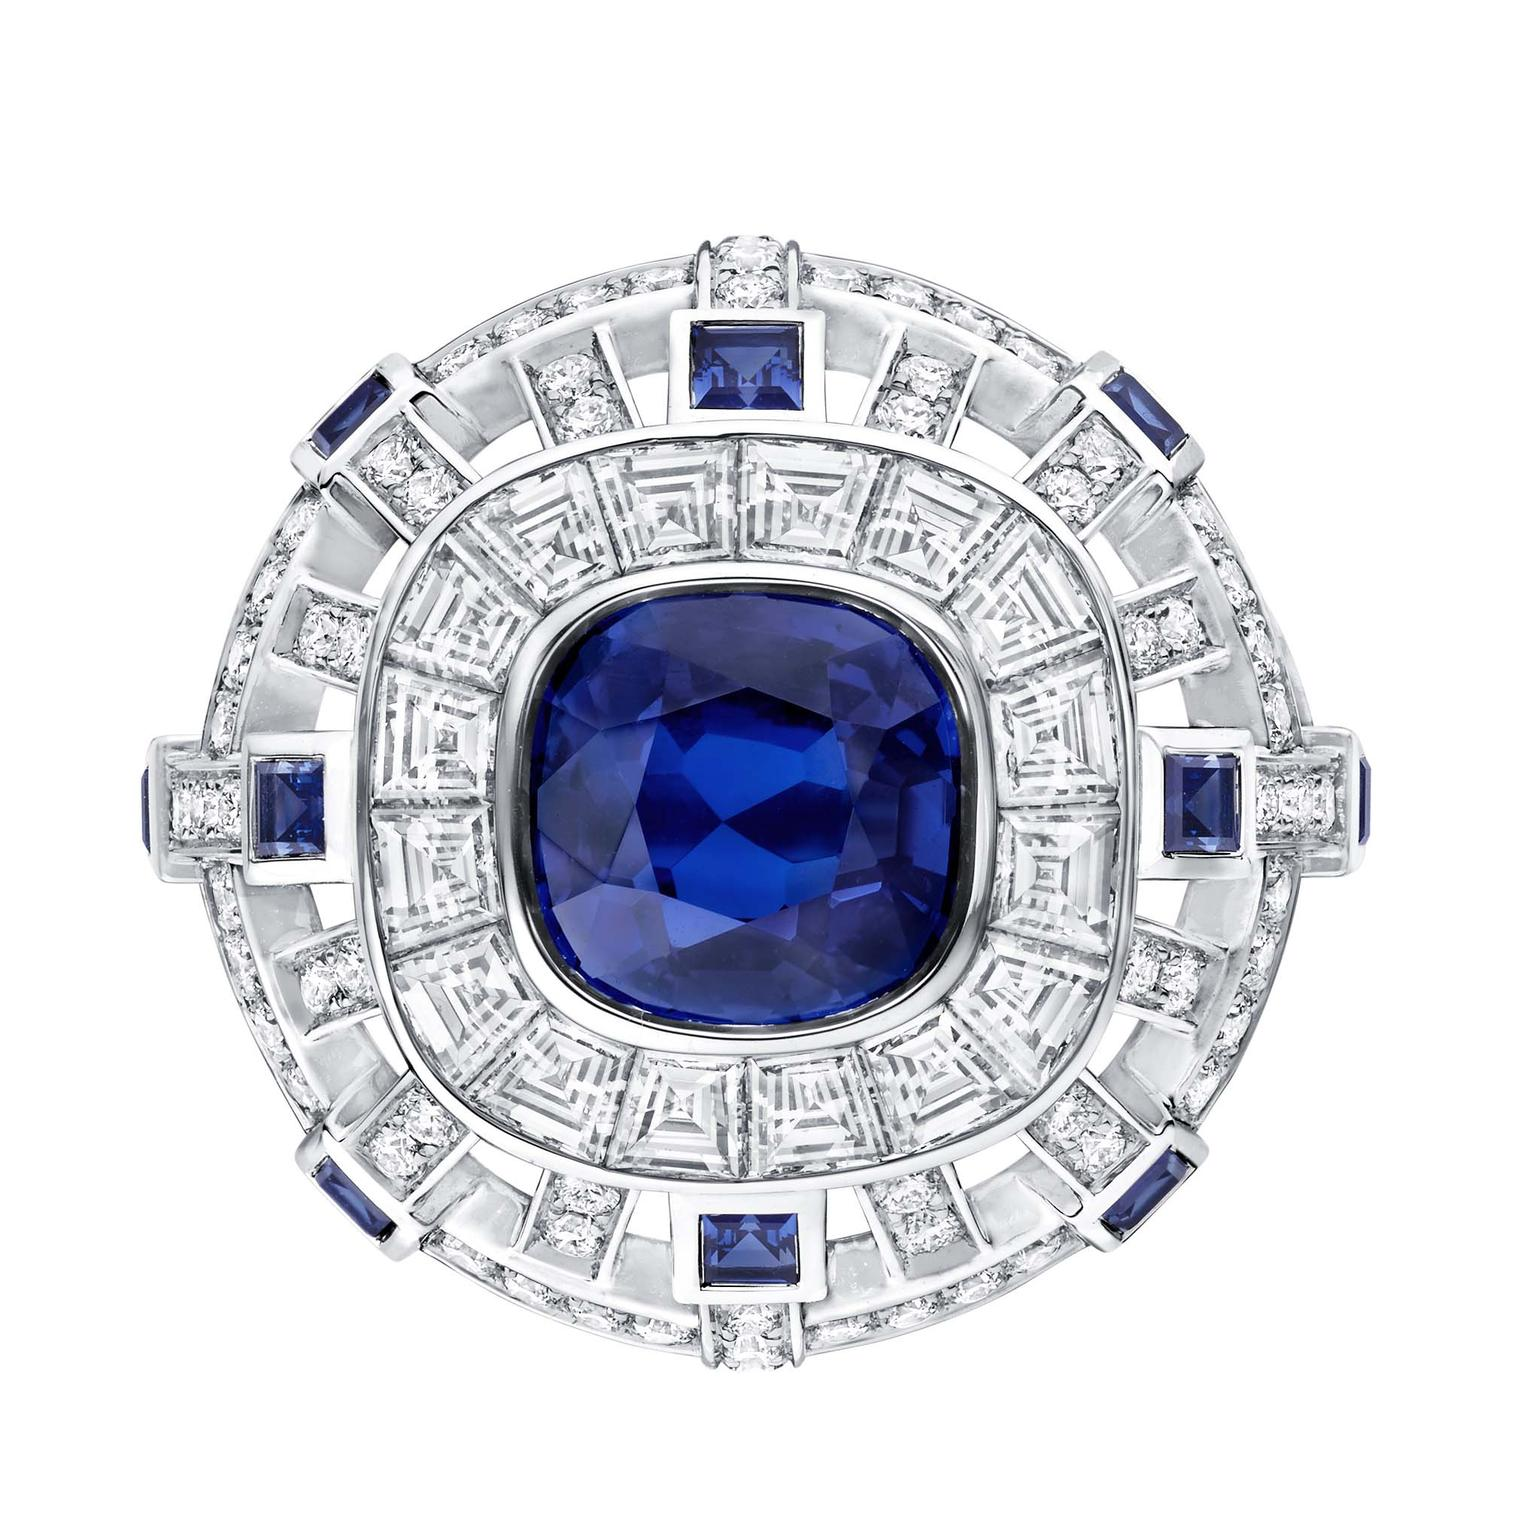 Louis Vuitton Riders of the Knights Le Royaume sapphire and diamond  ring